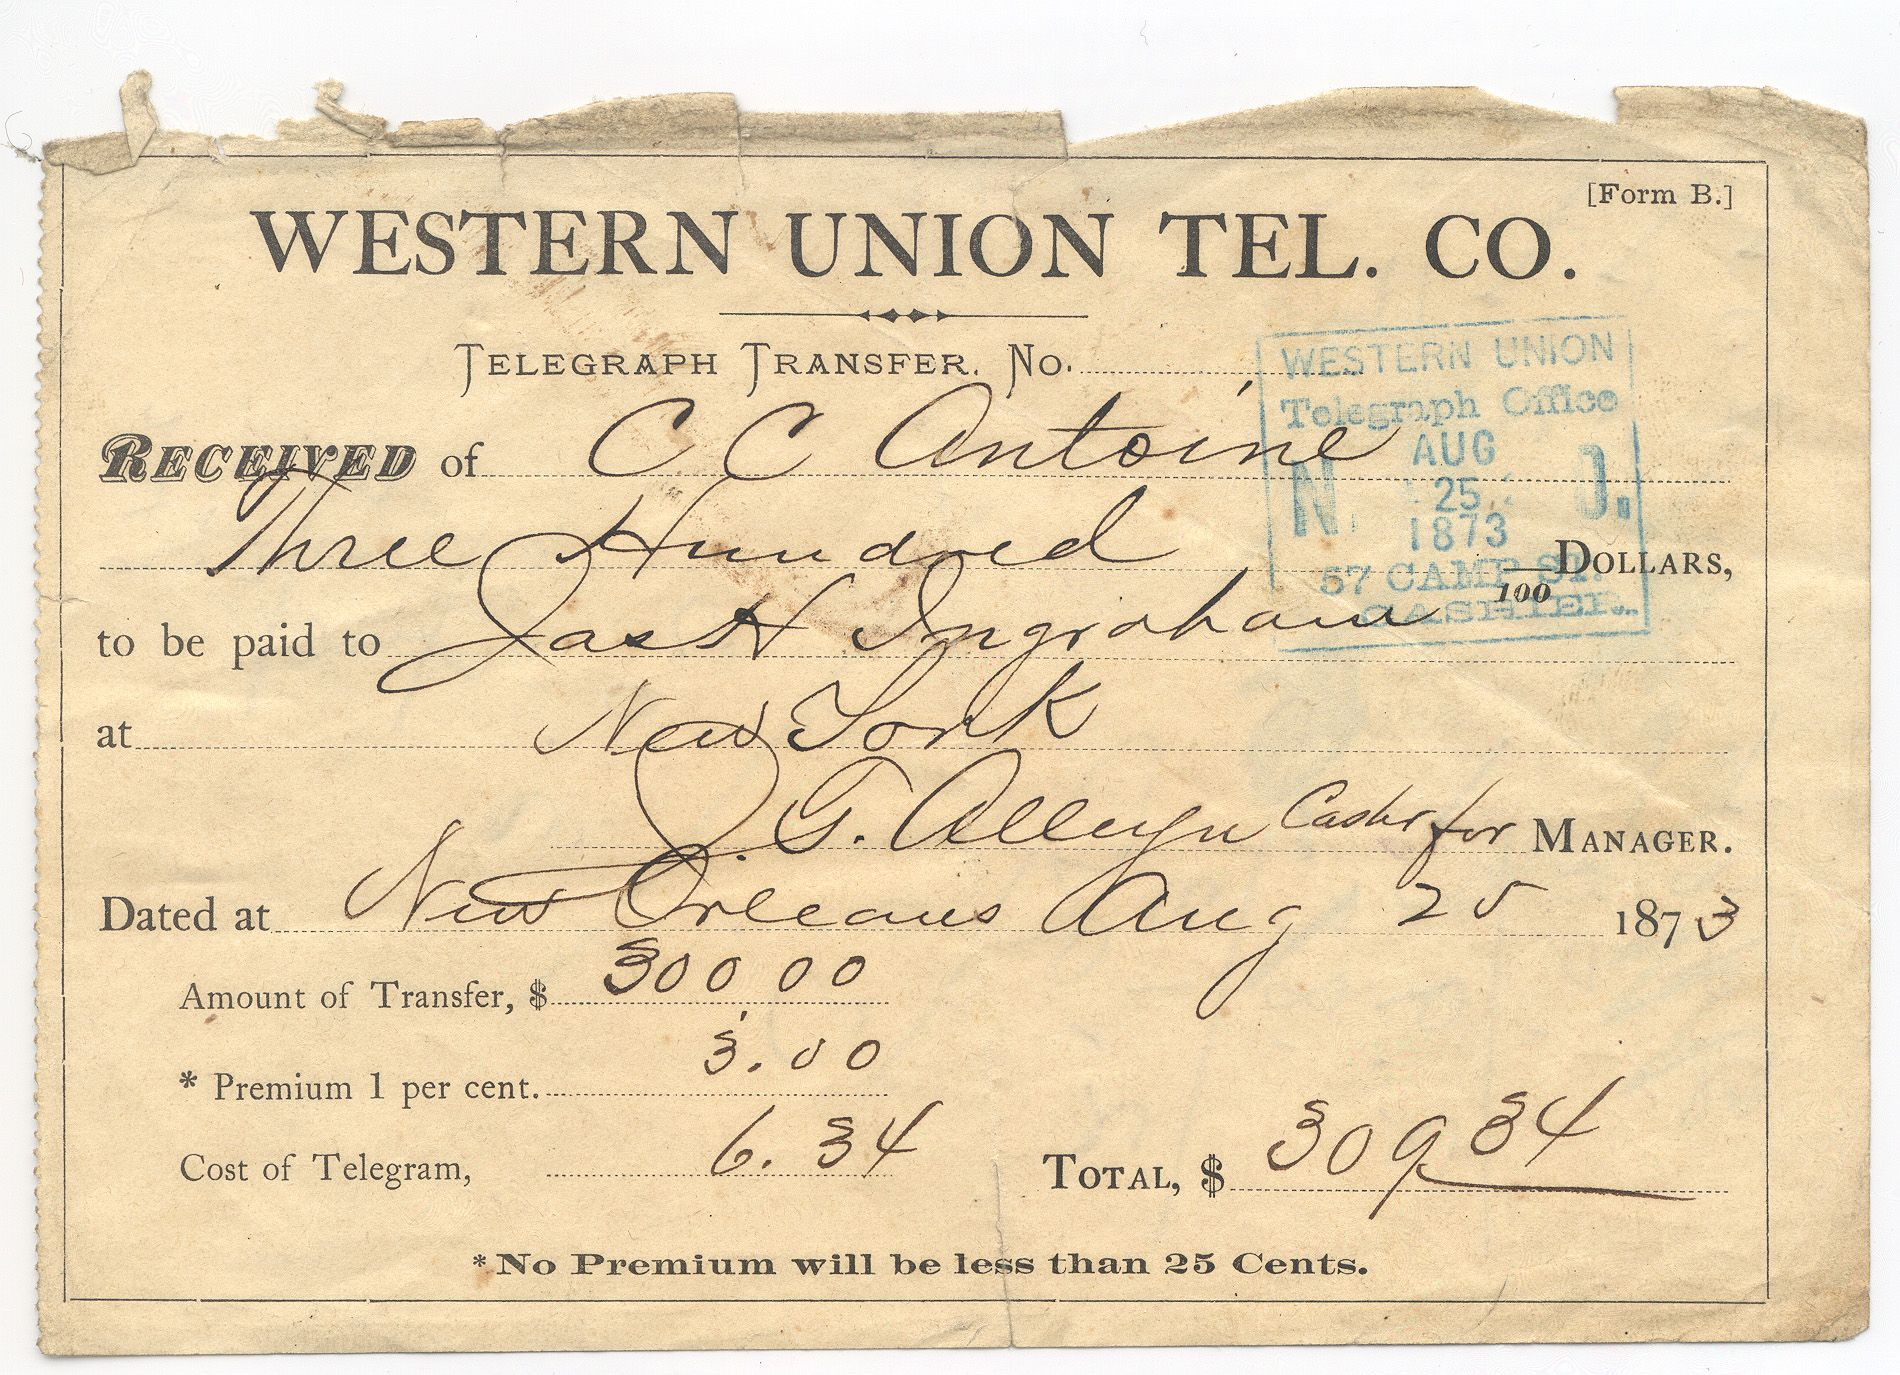 Money transfer form august 25 1873 westernunion with